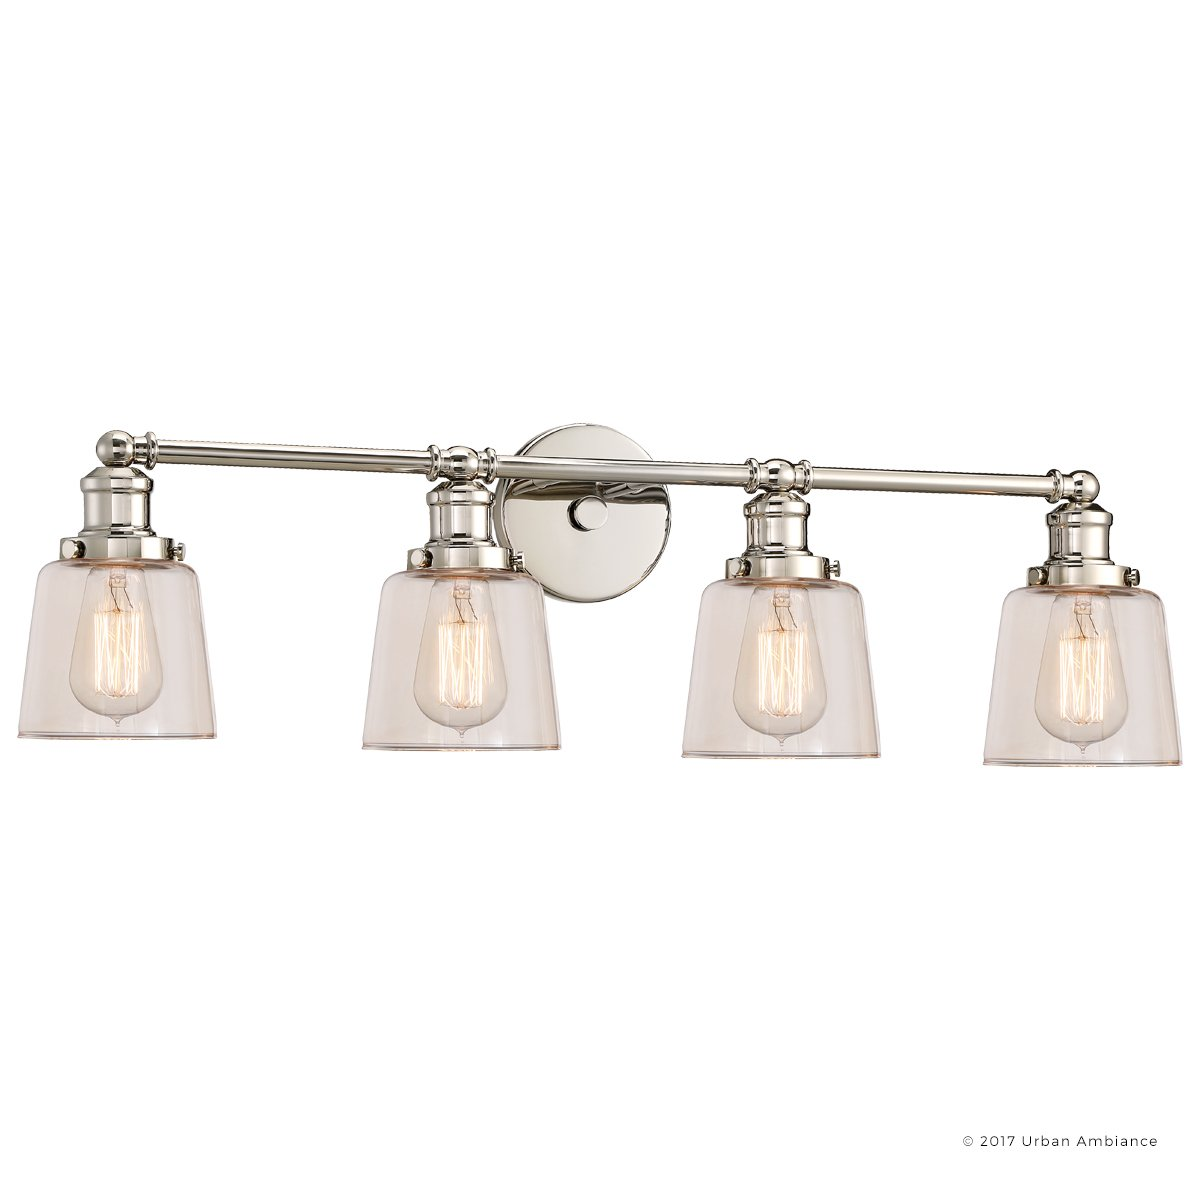 Luxury Industrial Chic Bathroom Vanity Light, Large Size: 9''H x 31.5''W, with Modern Style Elements, Nostalgic Design, Polished Nickel Finish and Light Champagne Glass, UQL2682 by Urban Ambiance by Urban Ambiance (Image #1)